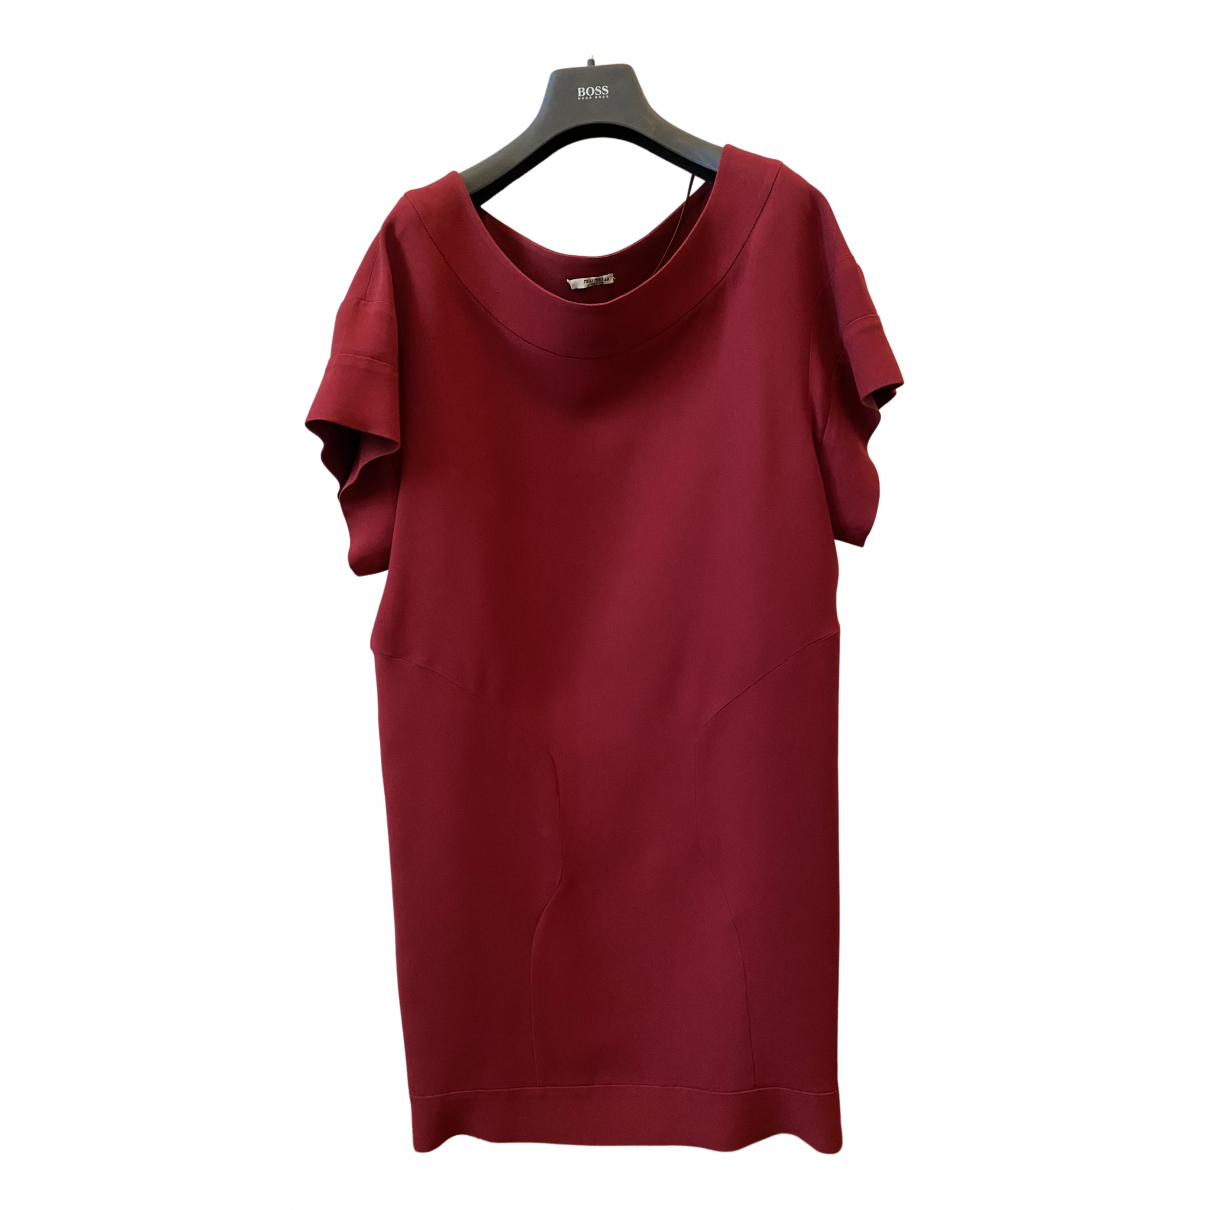 Miu Miu \N Burgundy dress for Women 40 IT